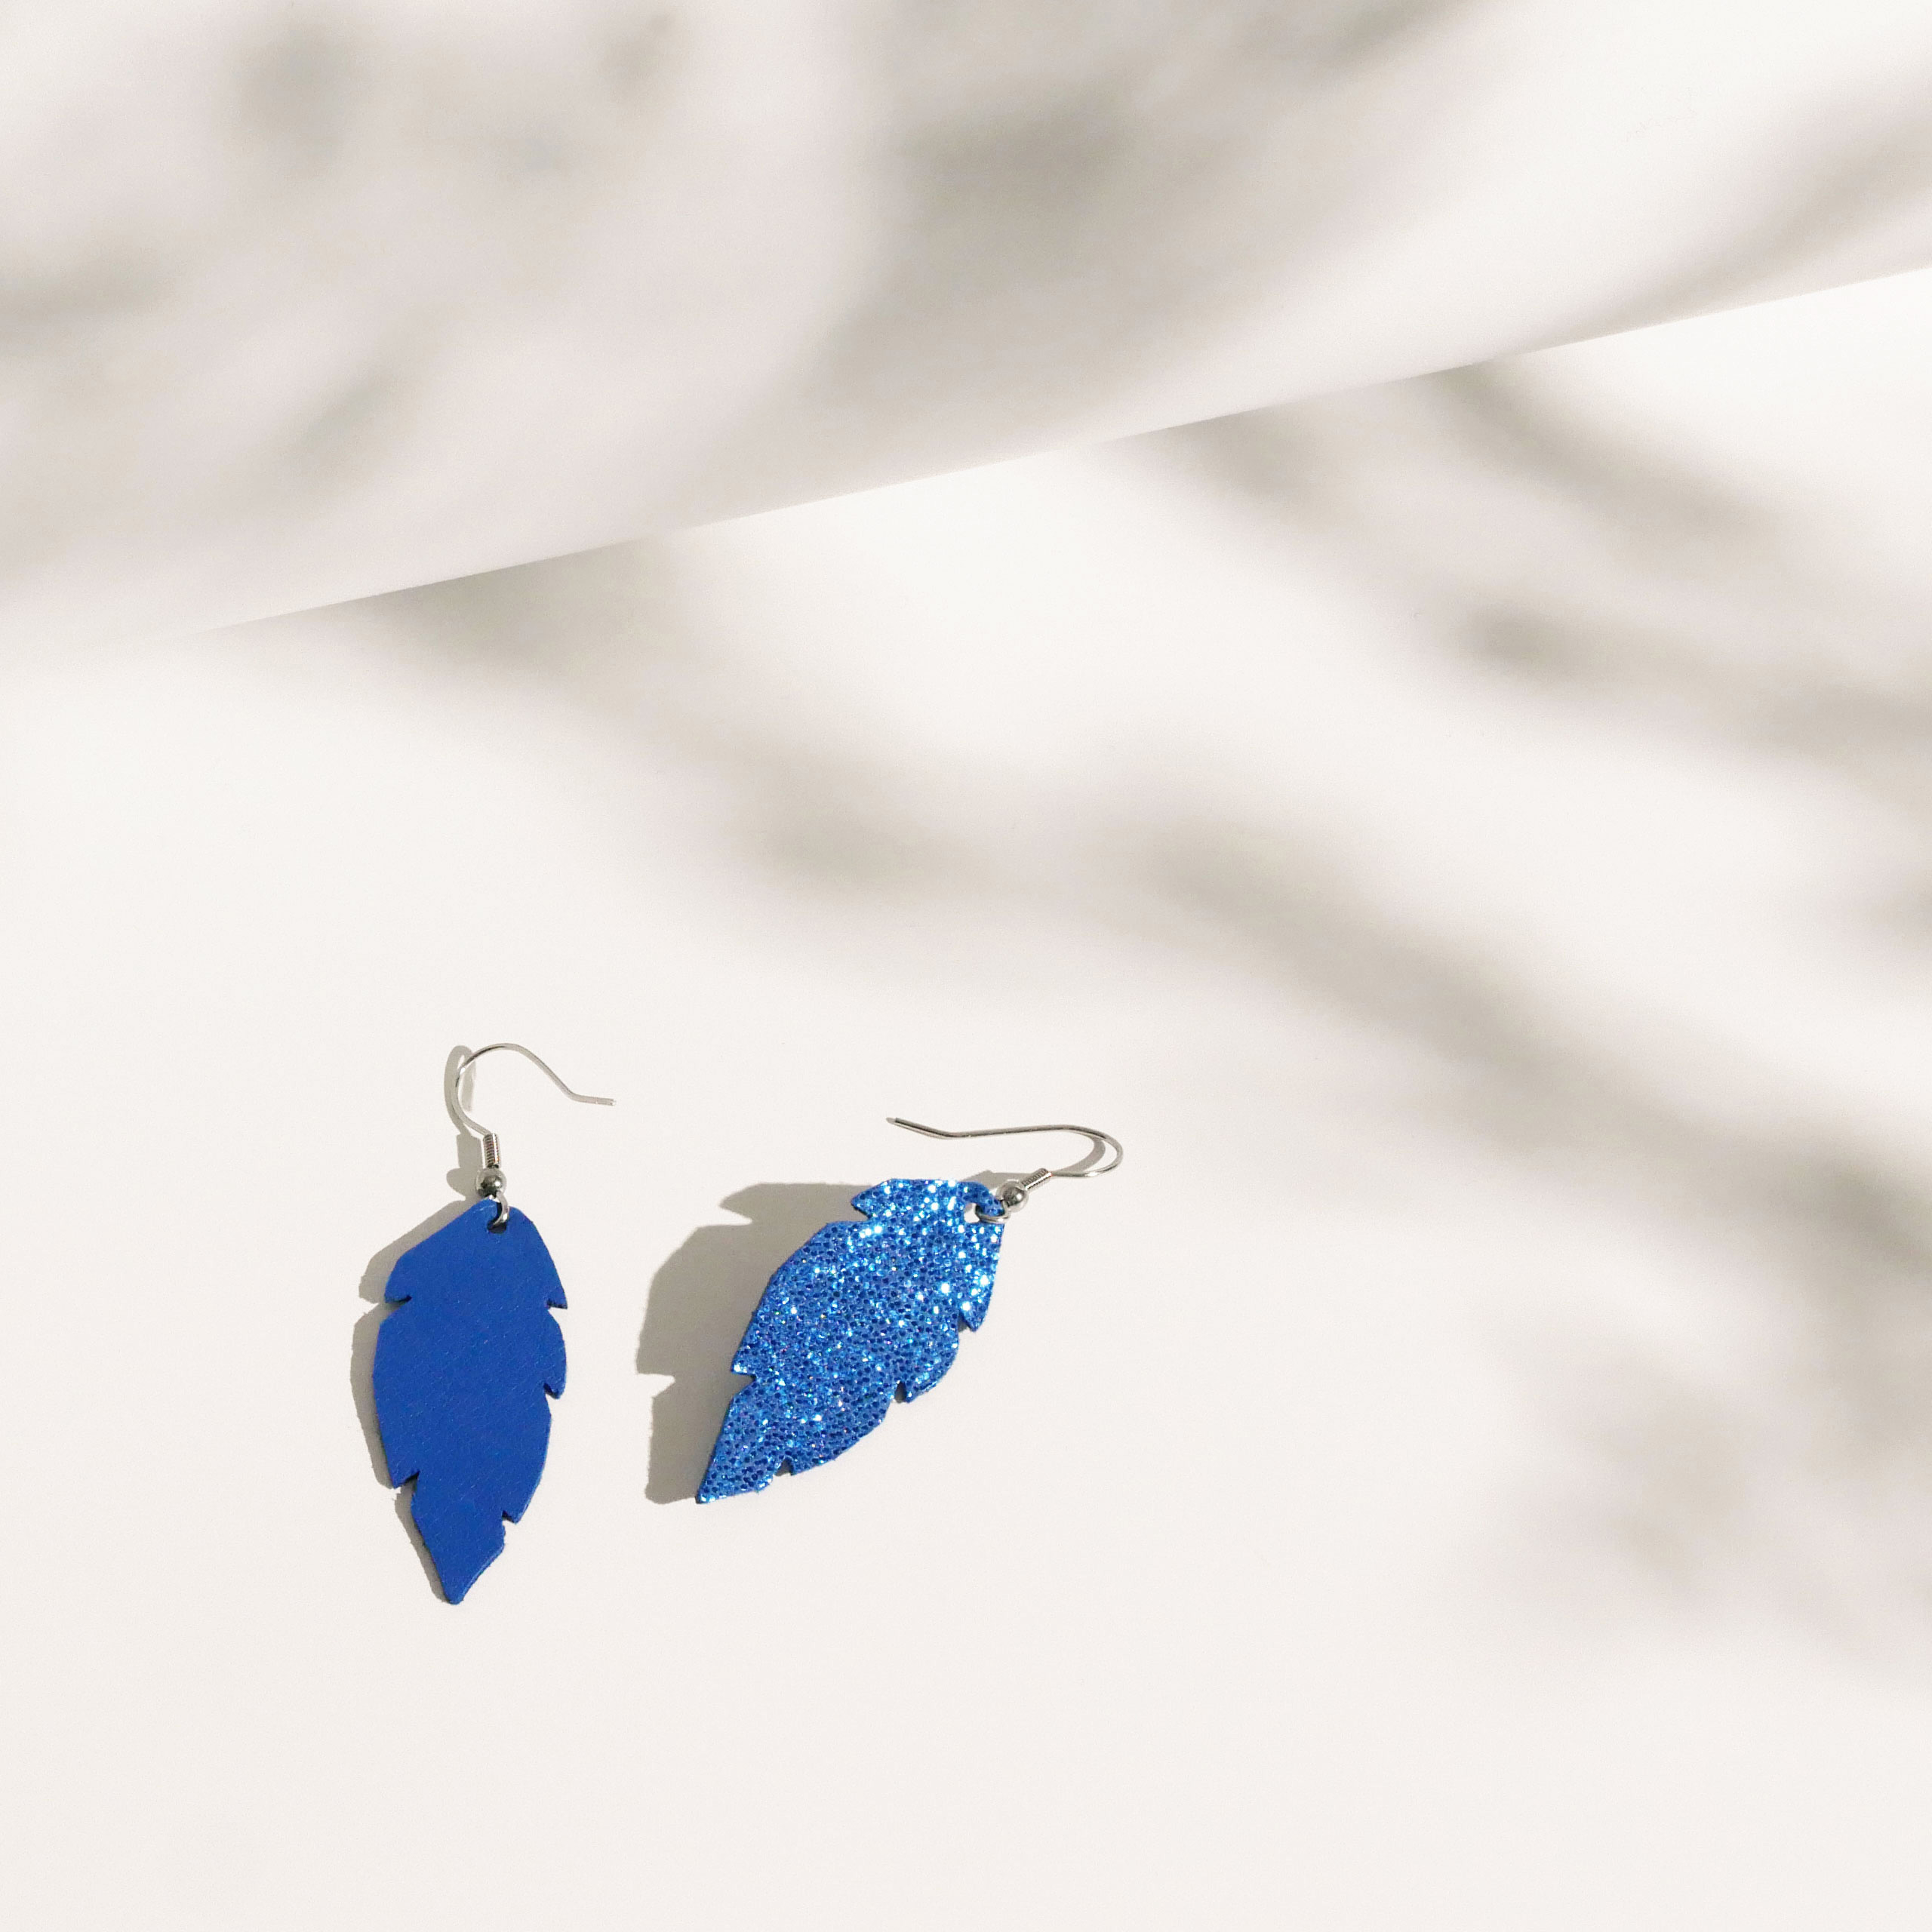 Viaminnet Feathers Petite - discover